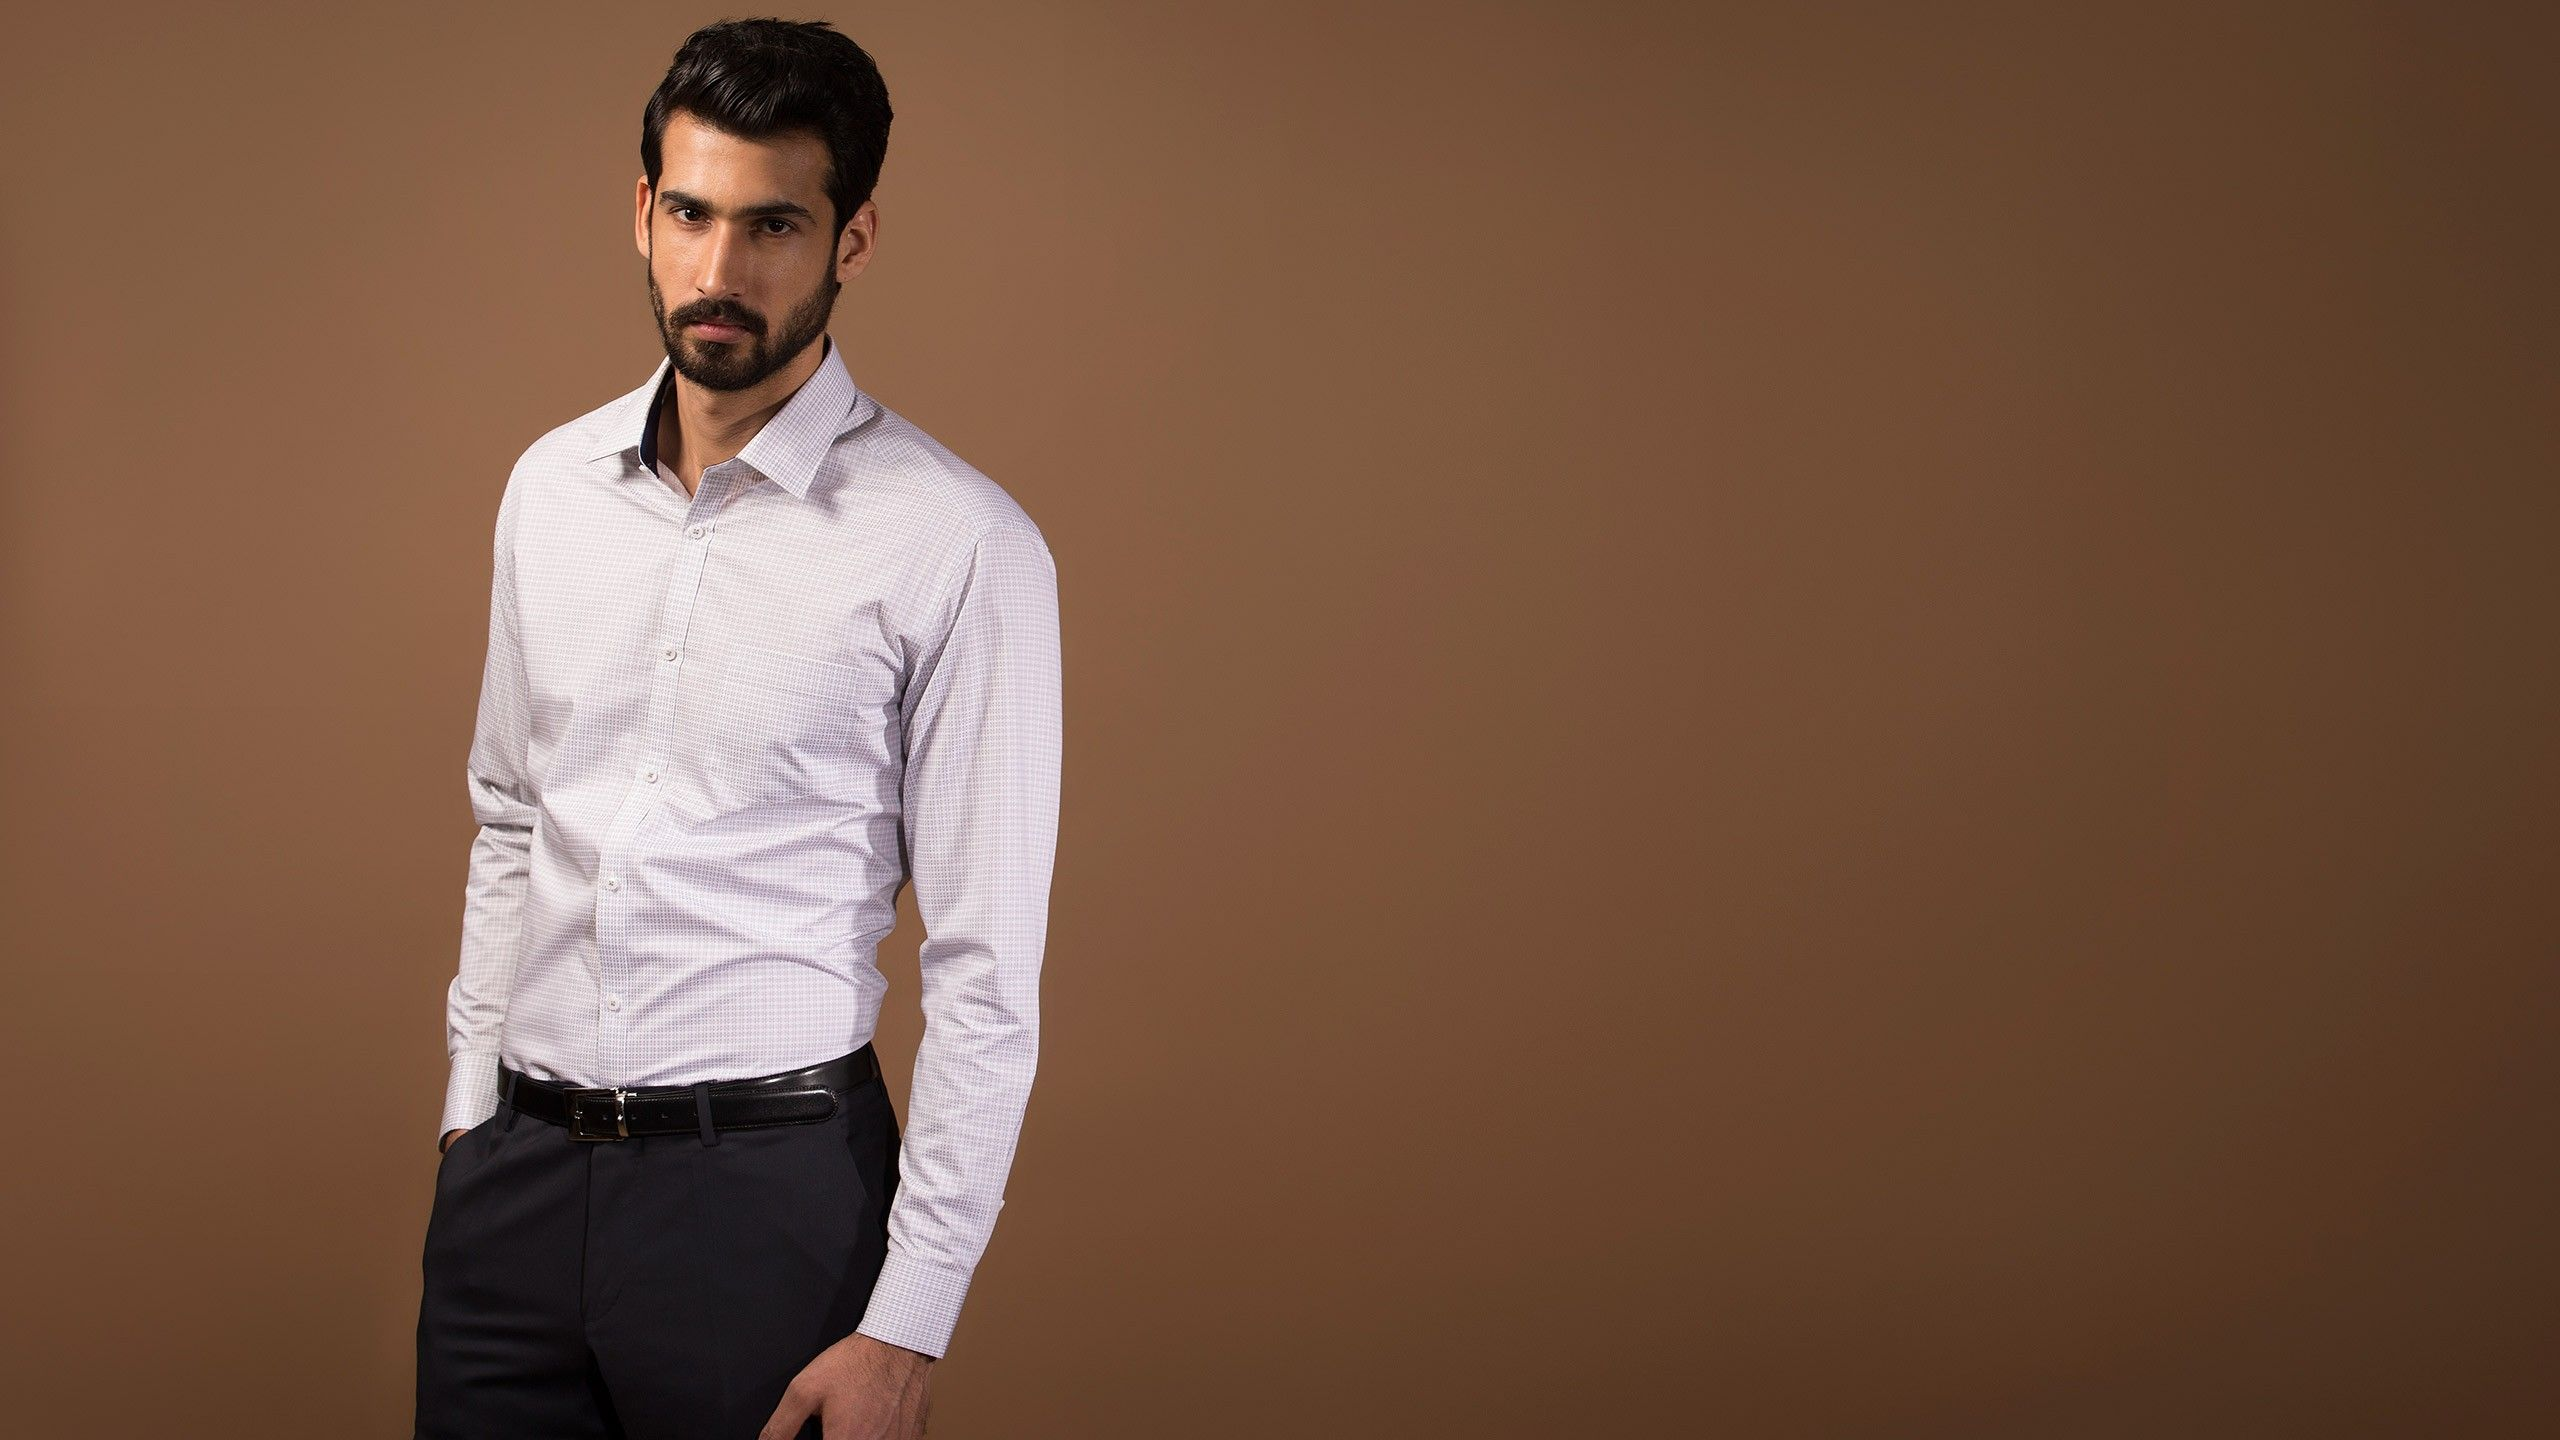 Buy Sum Grey Formal Shirts Online At Andamen At The Best Price